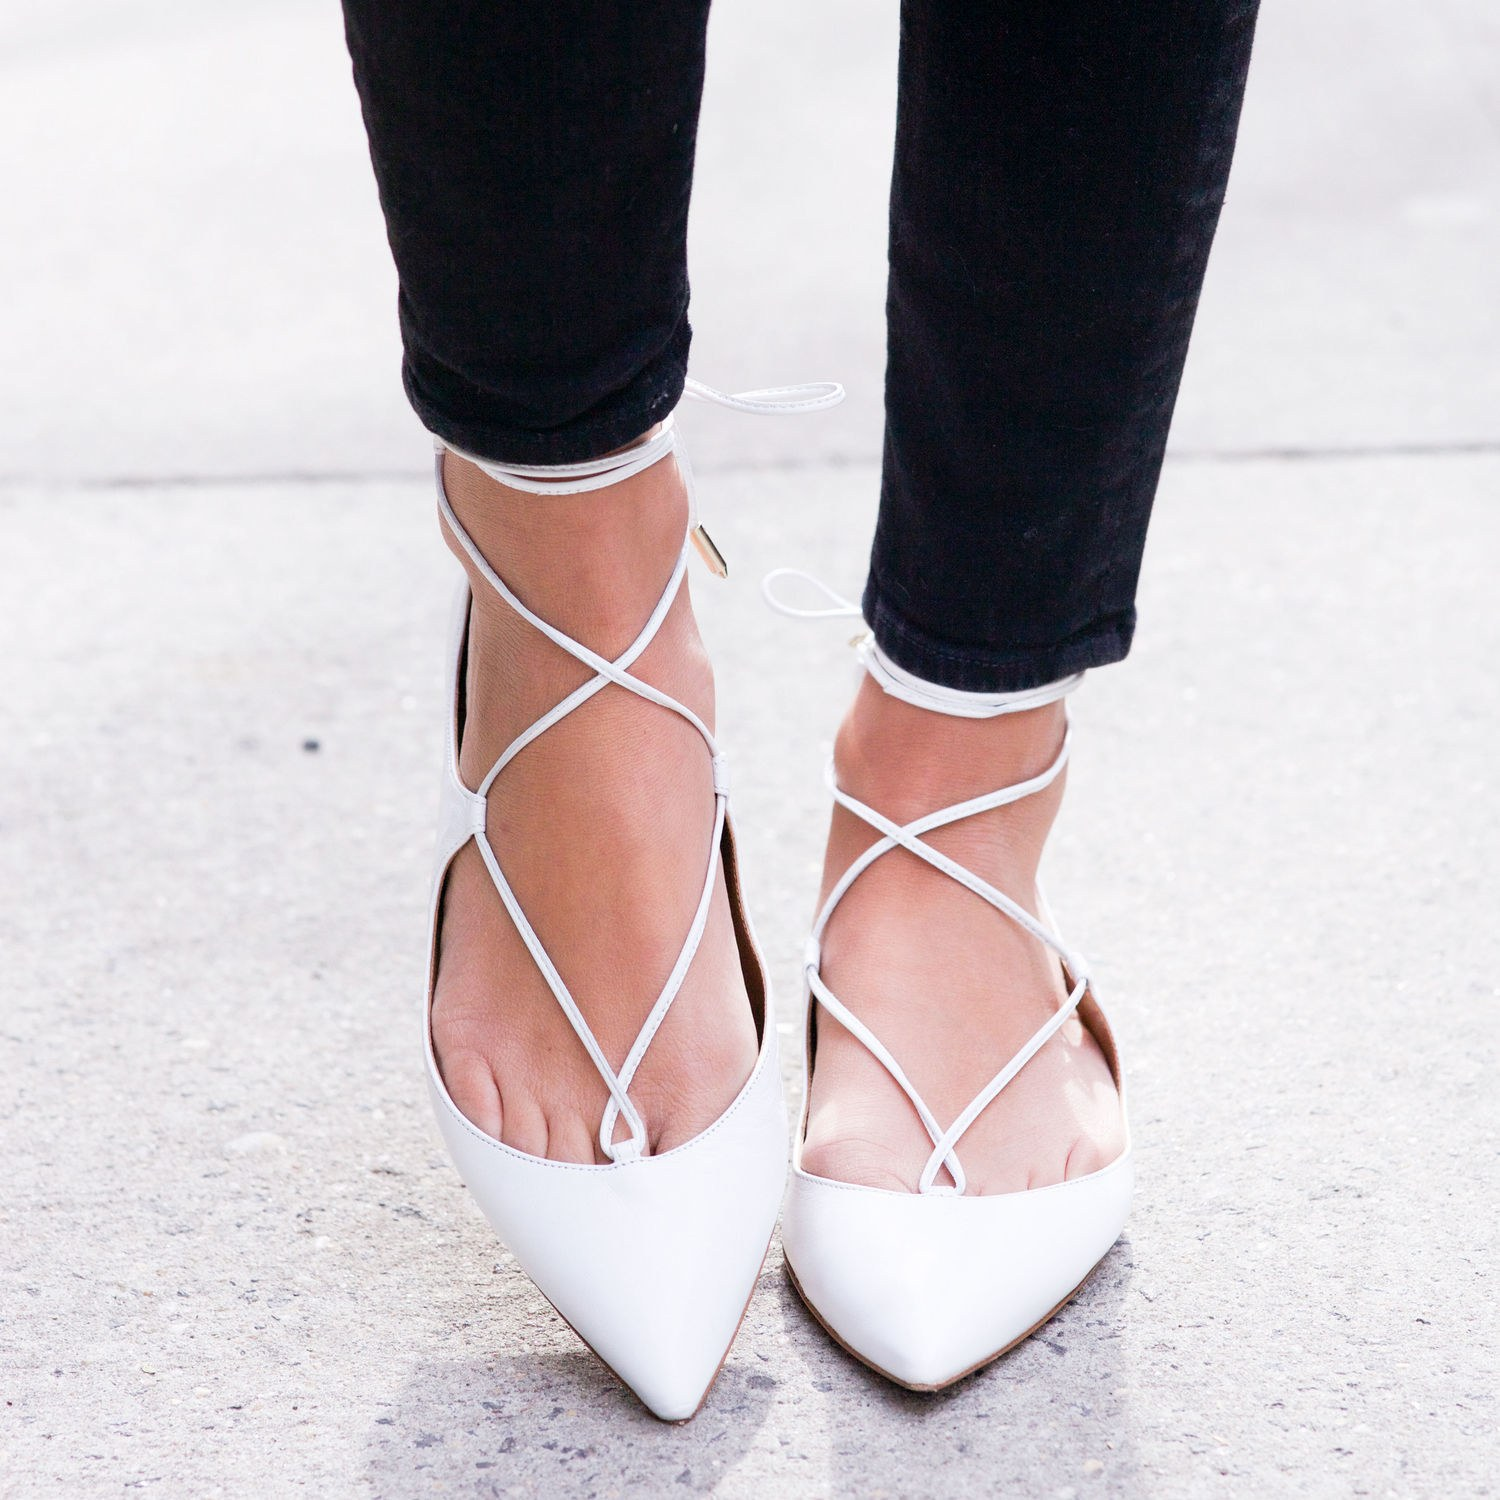 Pointed Toe Flats – A Comfortable Yet Stylish Choice